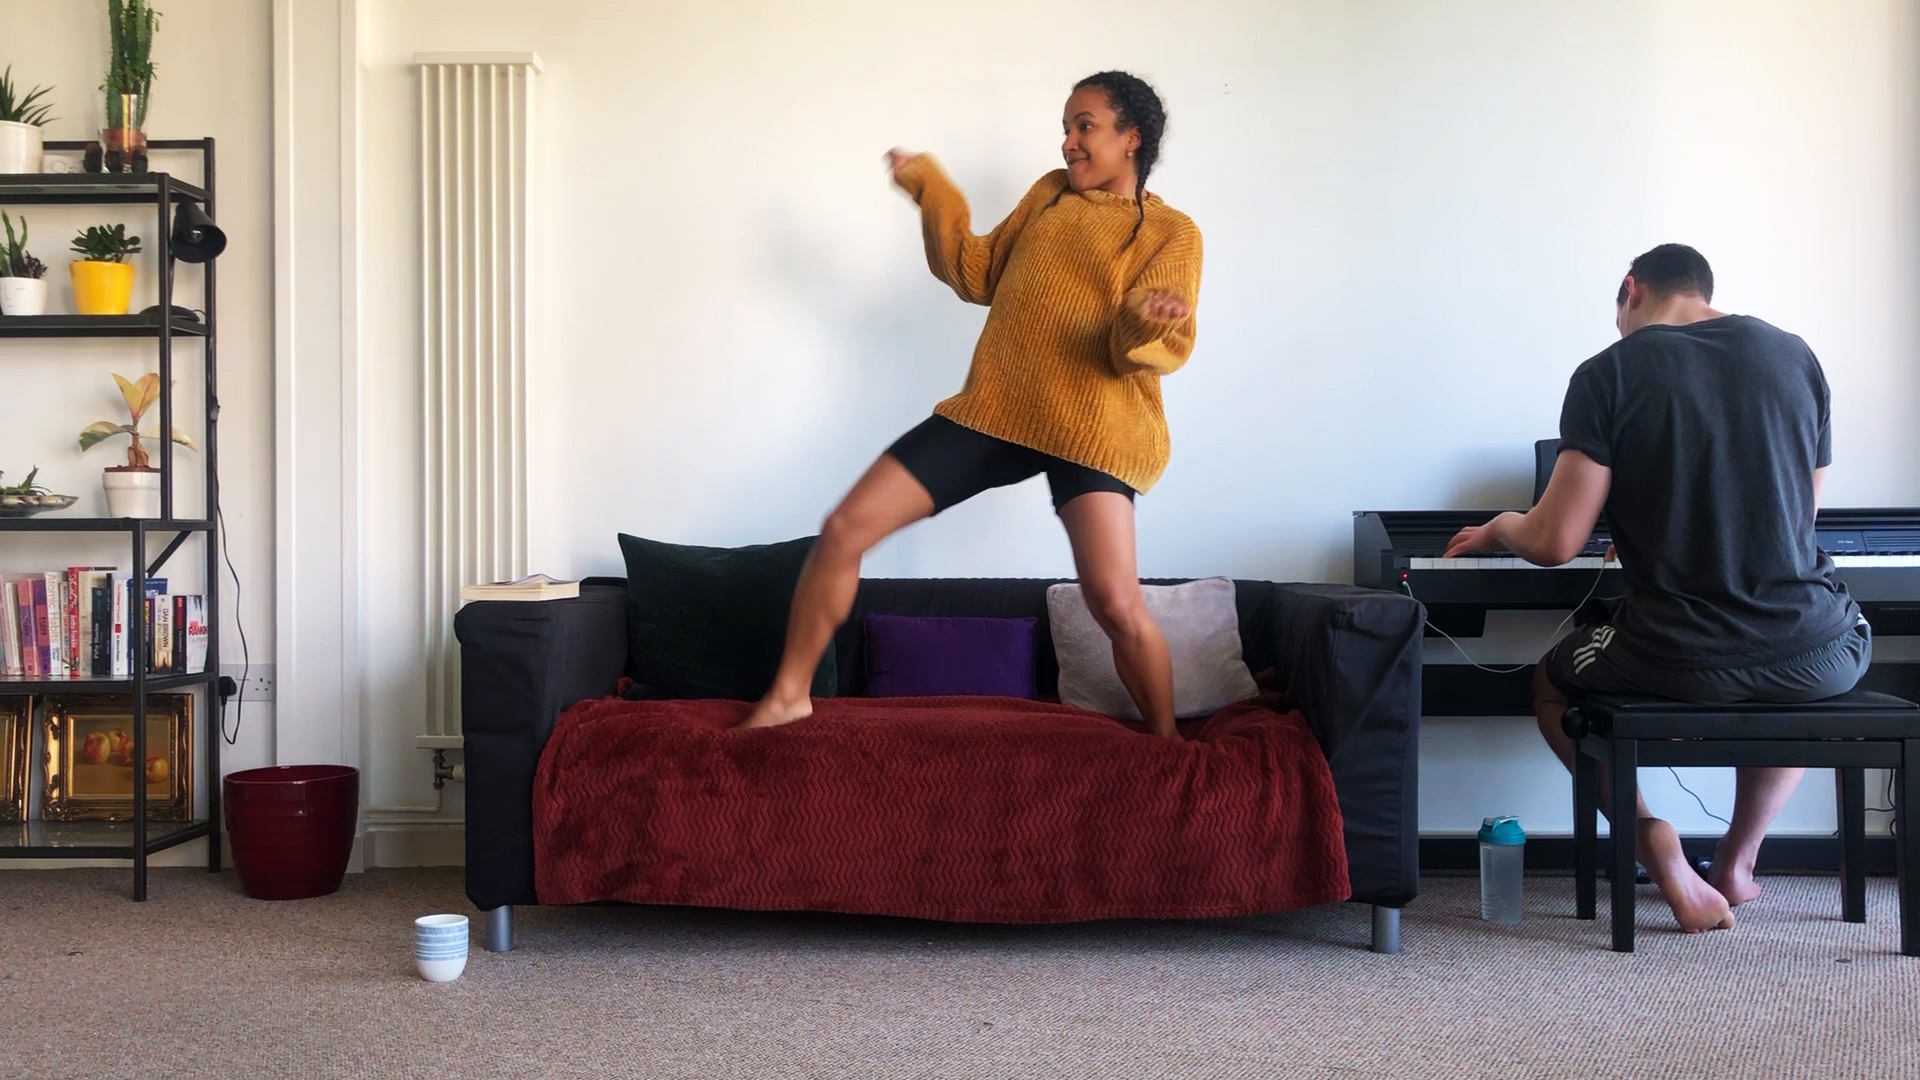 A mixed race woman her early thirties, in an ochre loose knit jumper and black shorts dancing on her black couch and a burgundy throw rug couch.